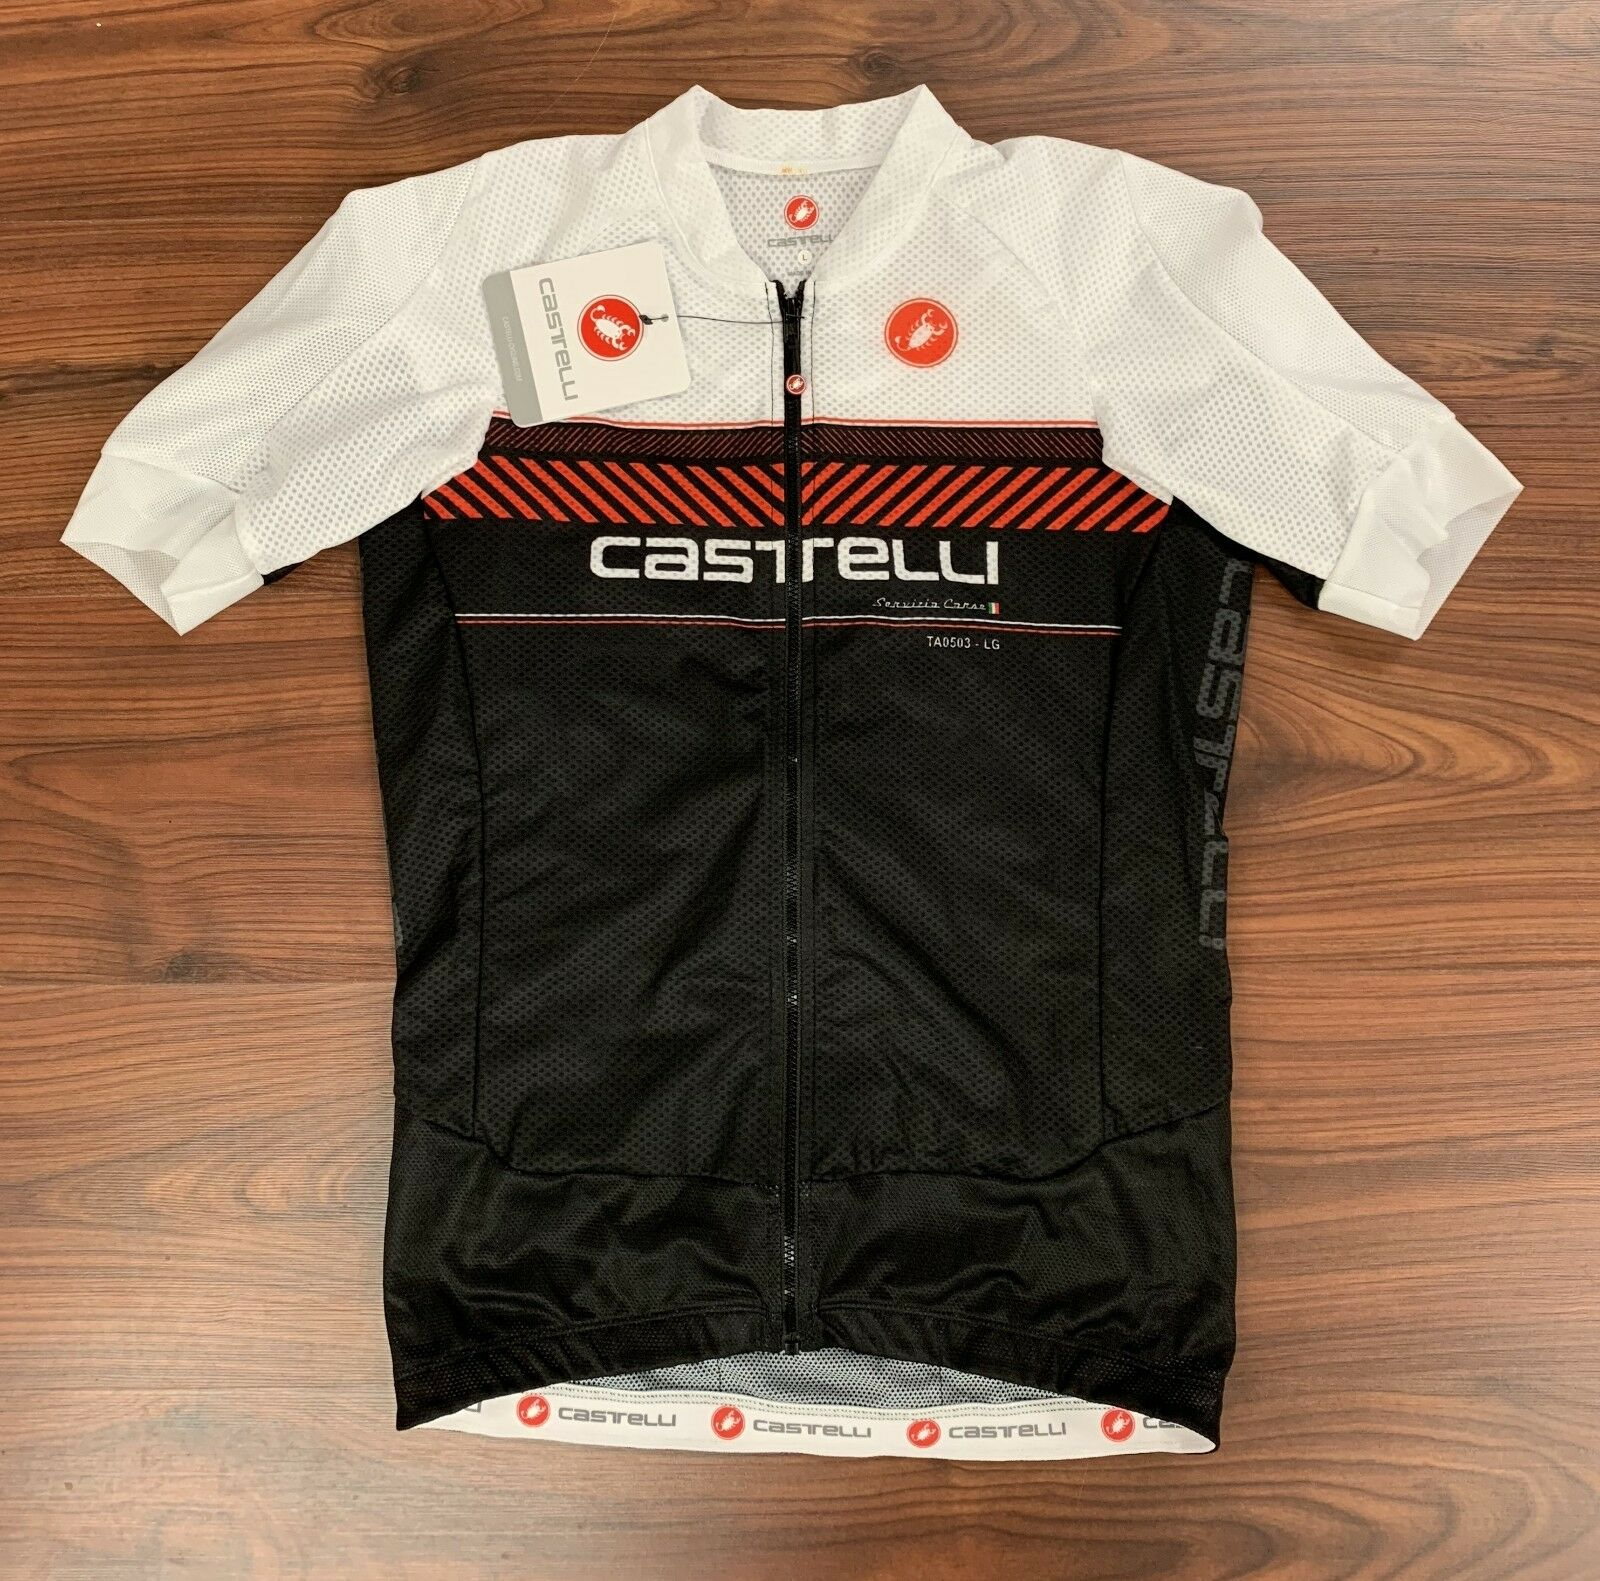 New Castelli Aero Race 5.1 Men's Large Jersey